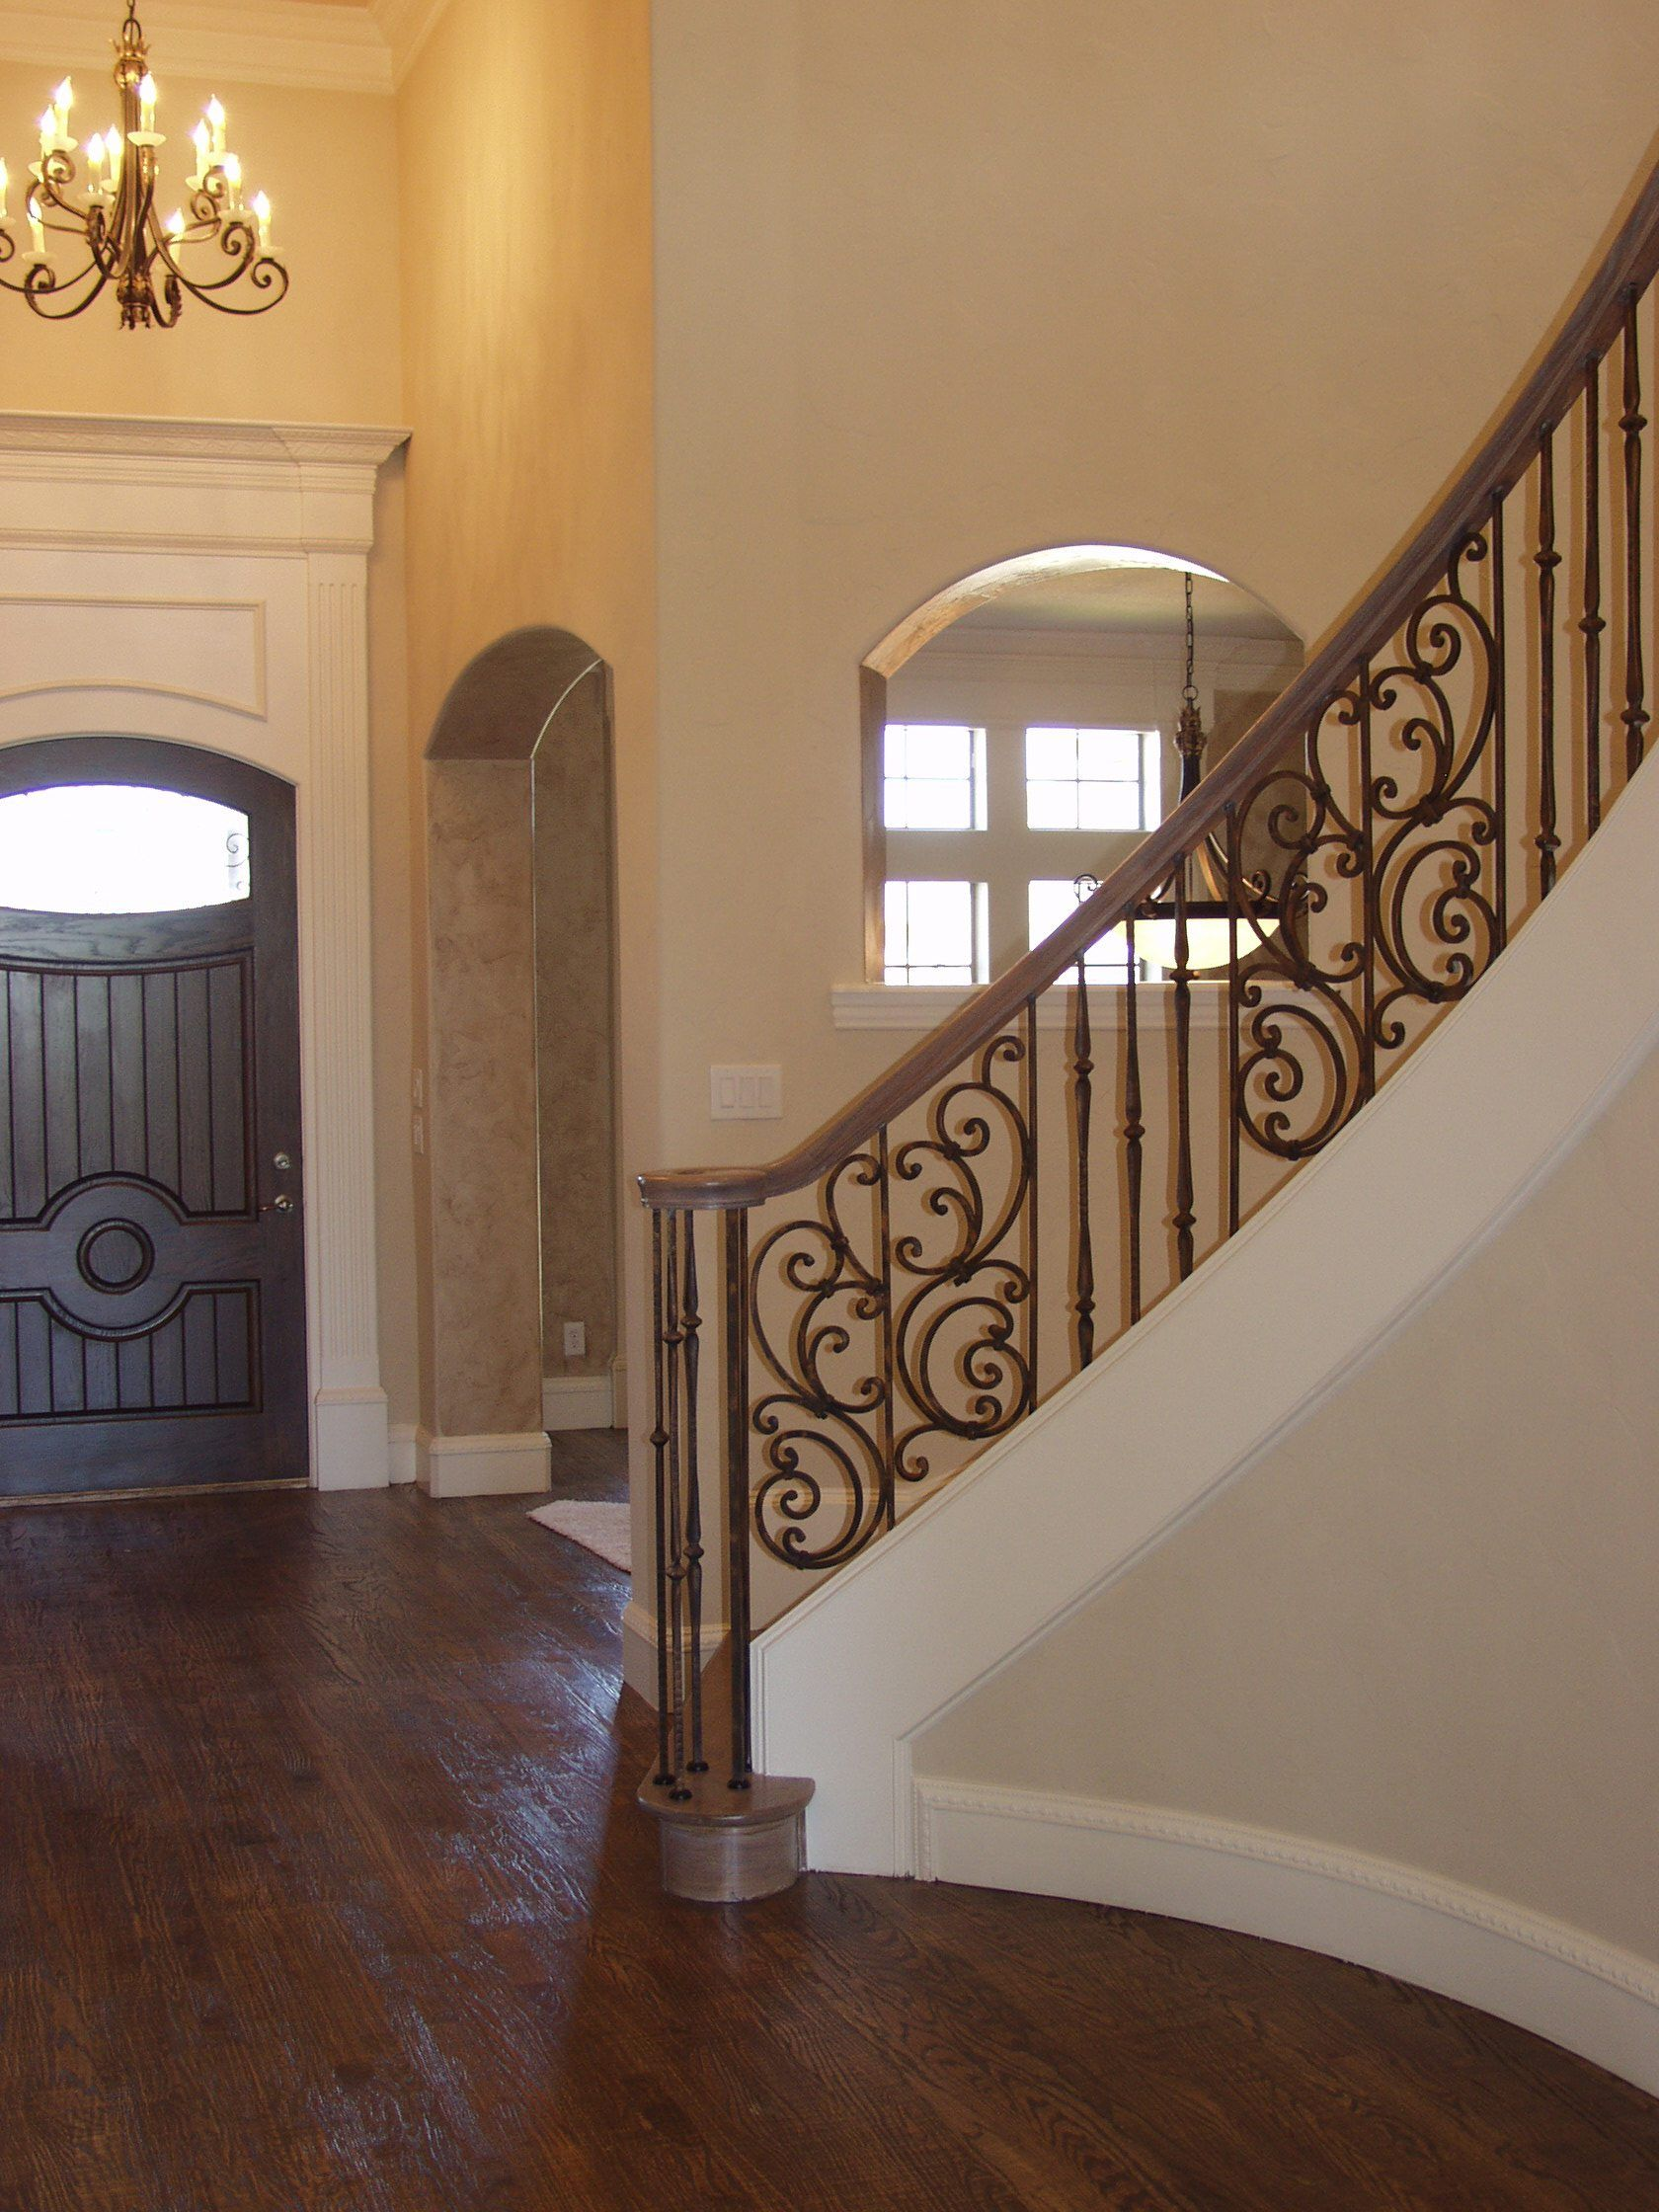 Tuscany D2 Curved Angled Iron Stair Railing Wrought Iron Stair Railing Wrought Iron Stairs